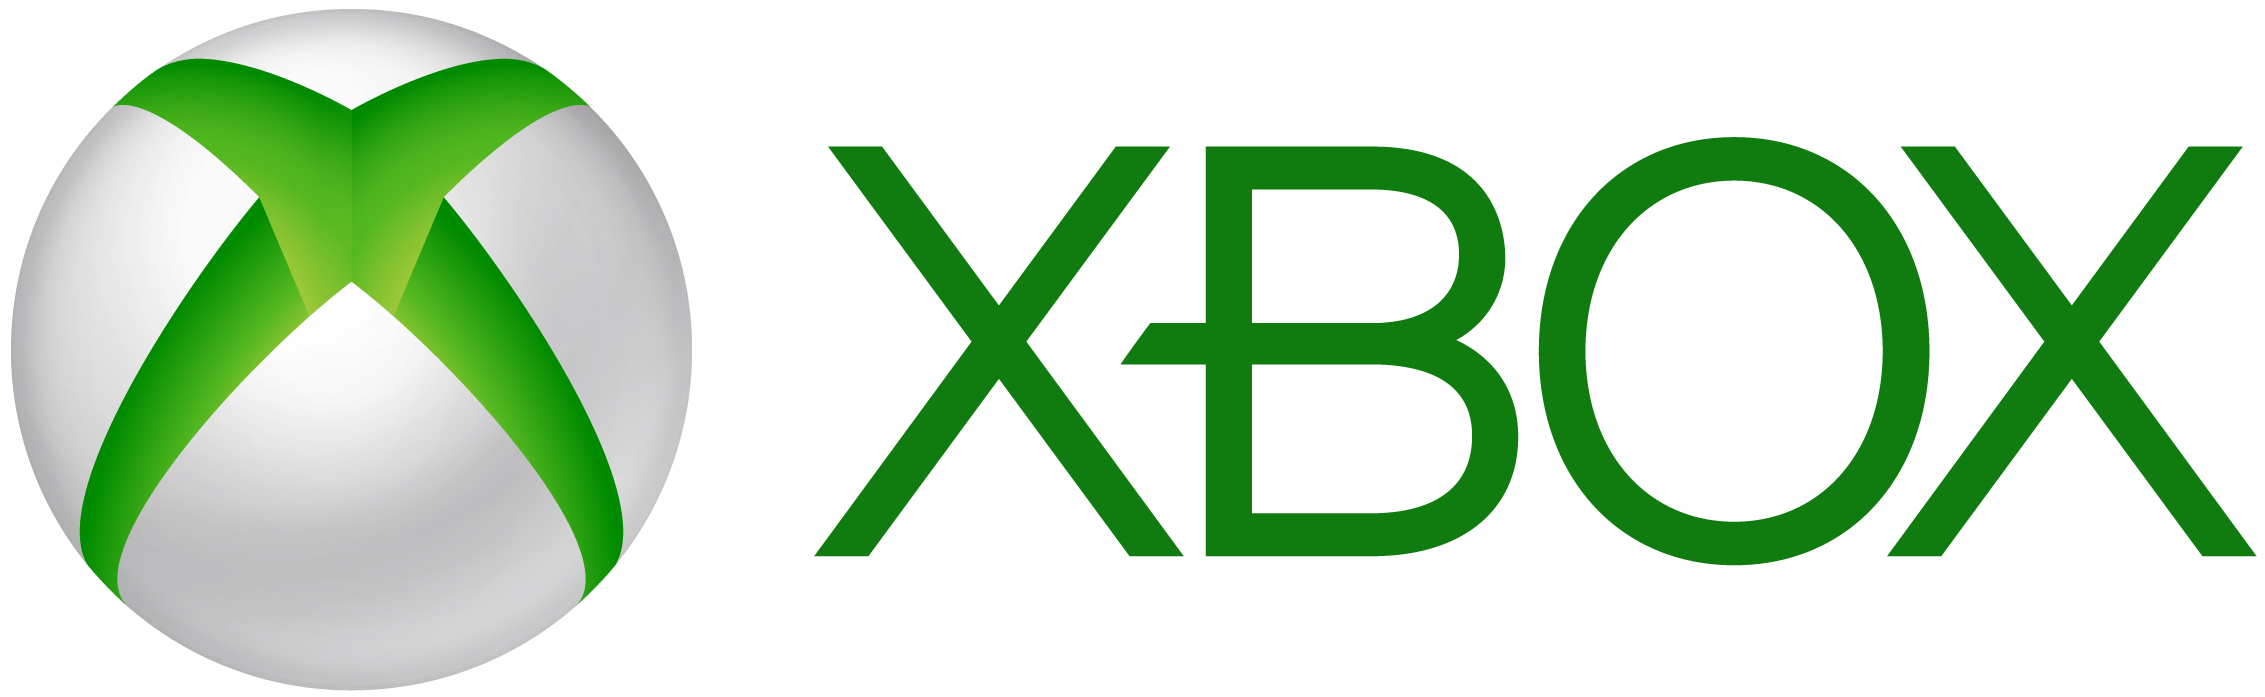 Xbox 2013 Logo BEACH MASSACRE AT KILL DEVIL HILLS